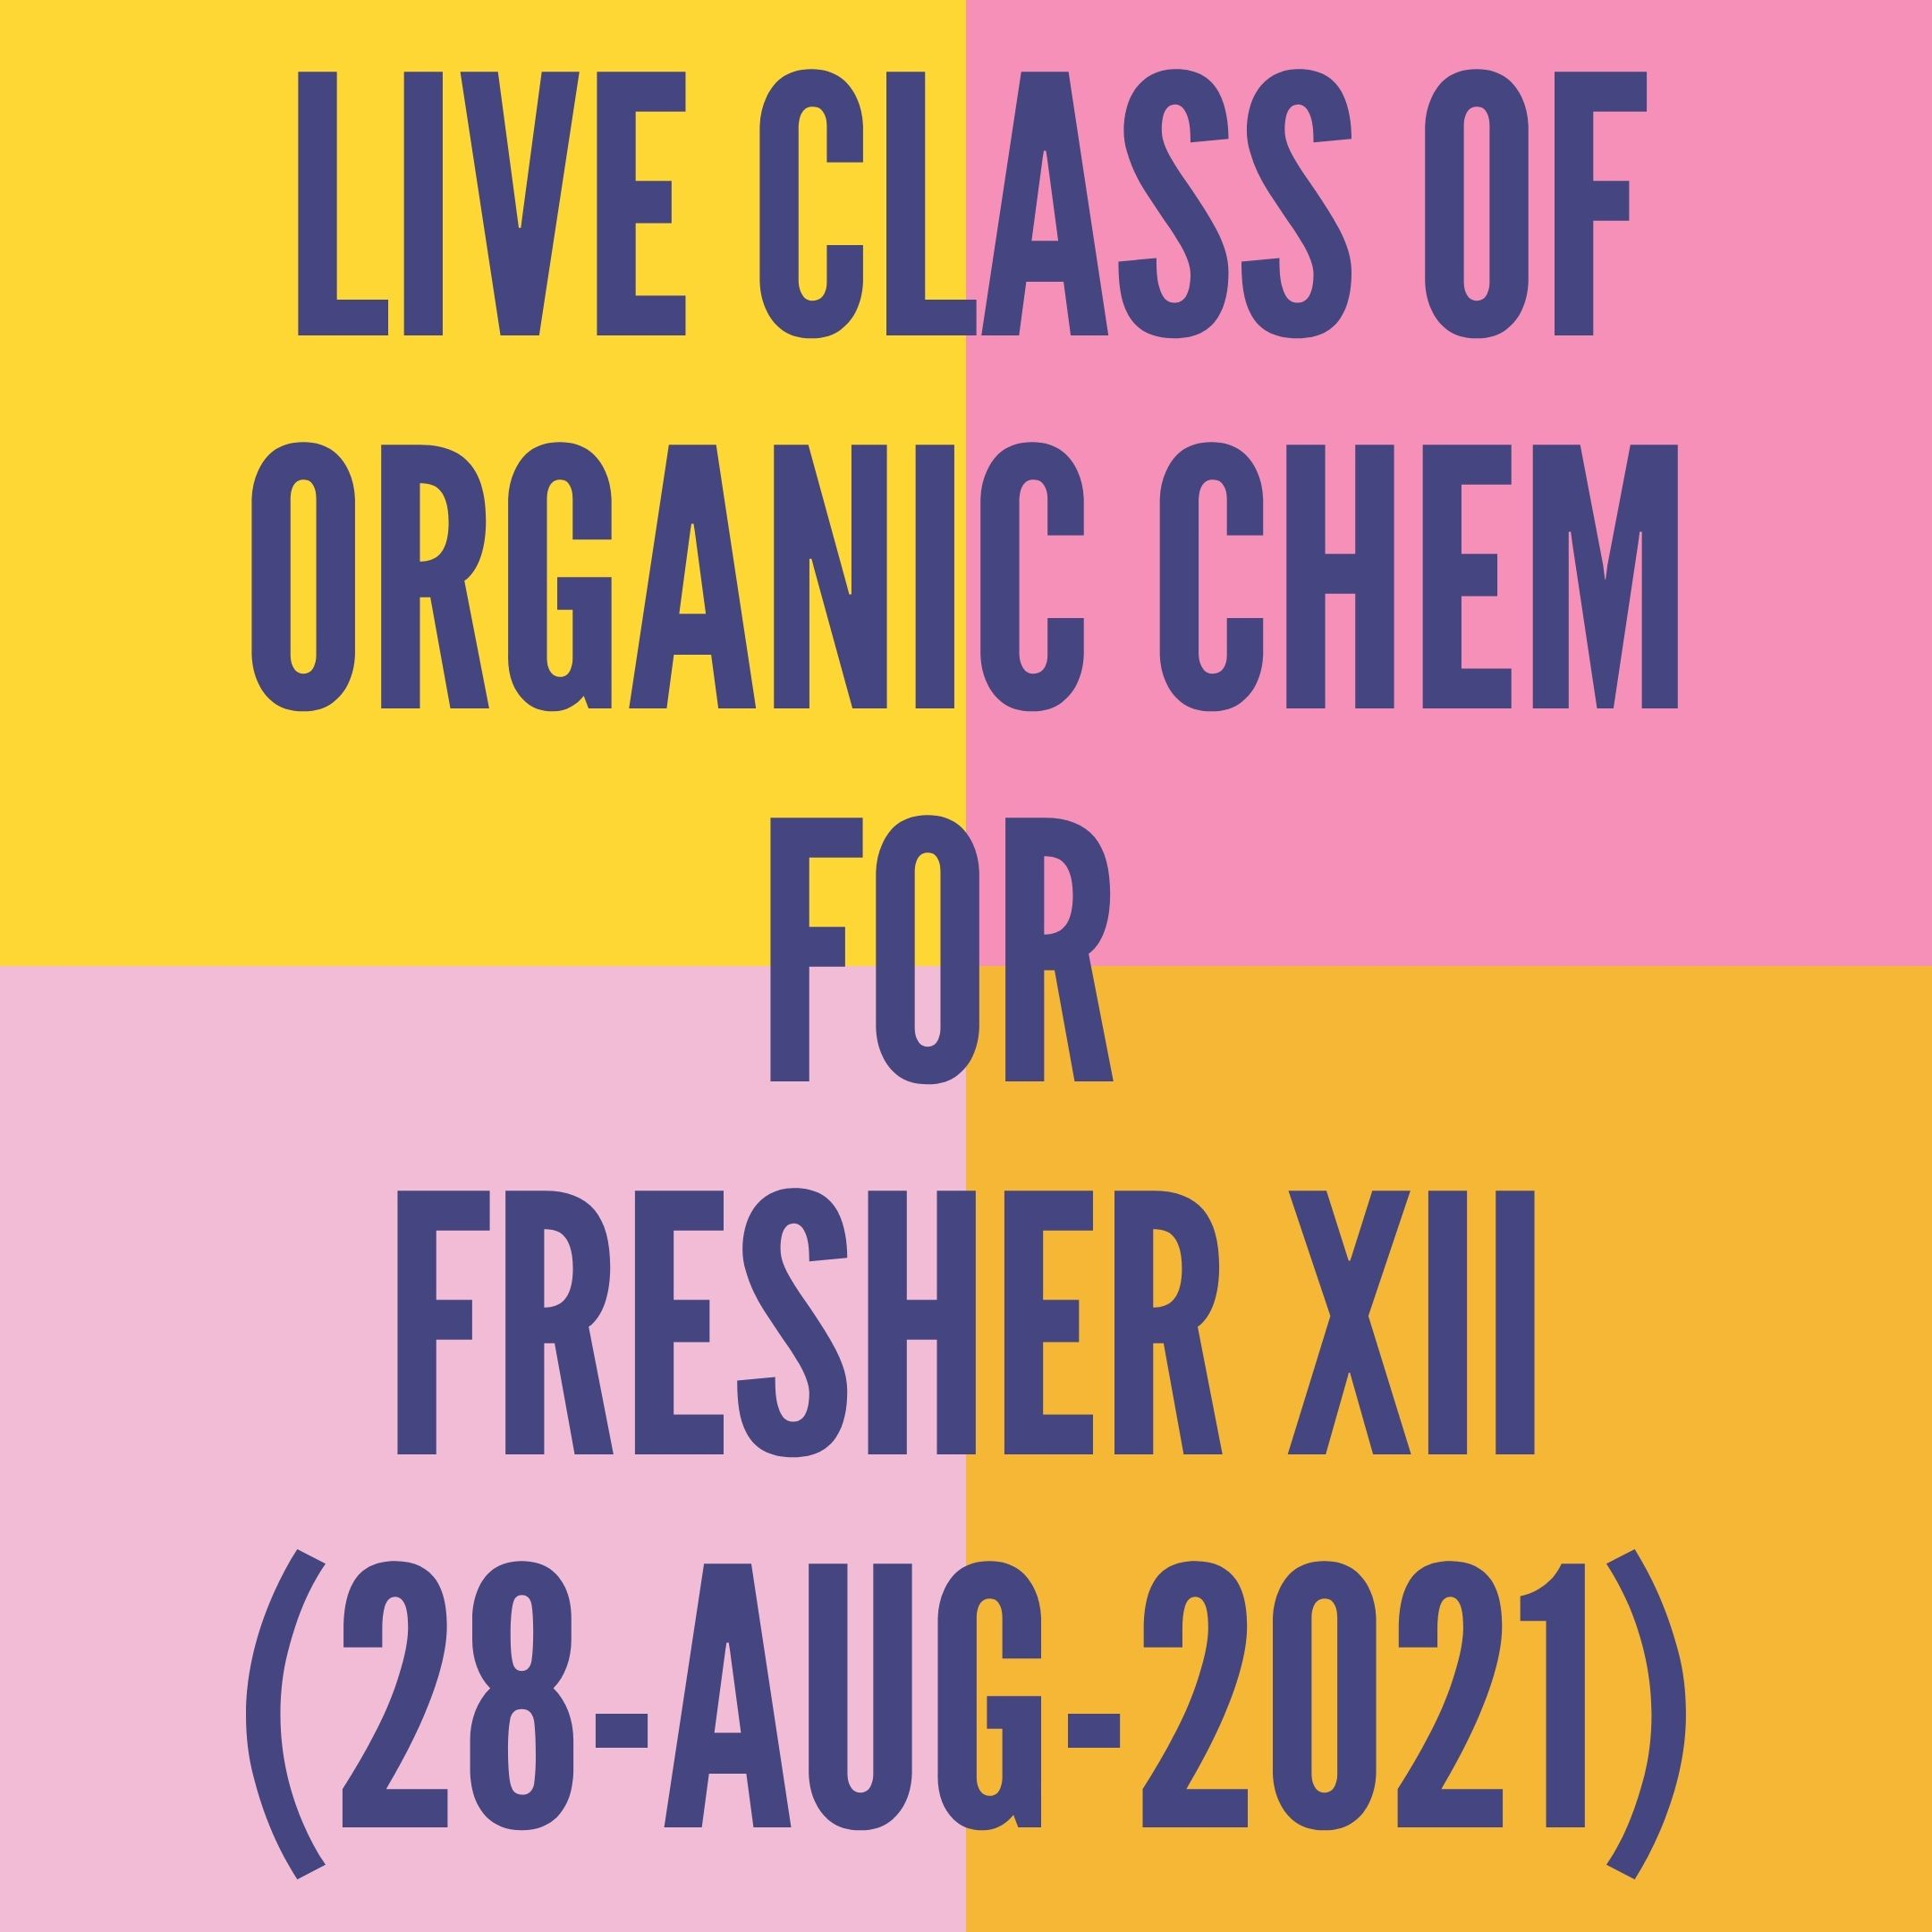 LIVE CLASS OF ORGANIC CHEMISTRY FOR FRESHER XII (28-AUG-2021) ALCOHOL, PHENOL & ETHER